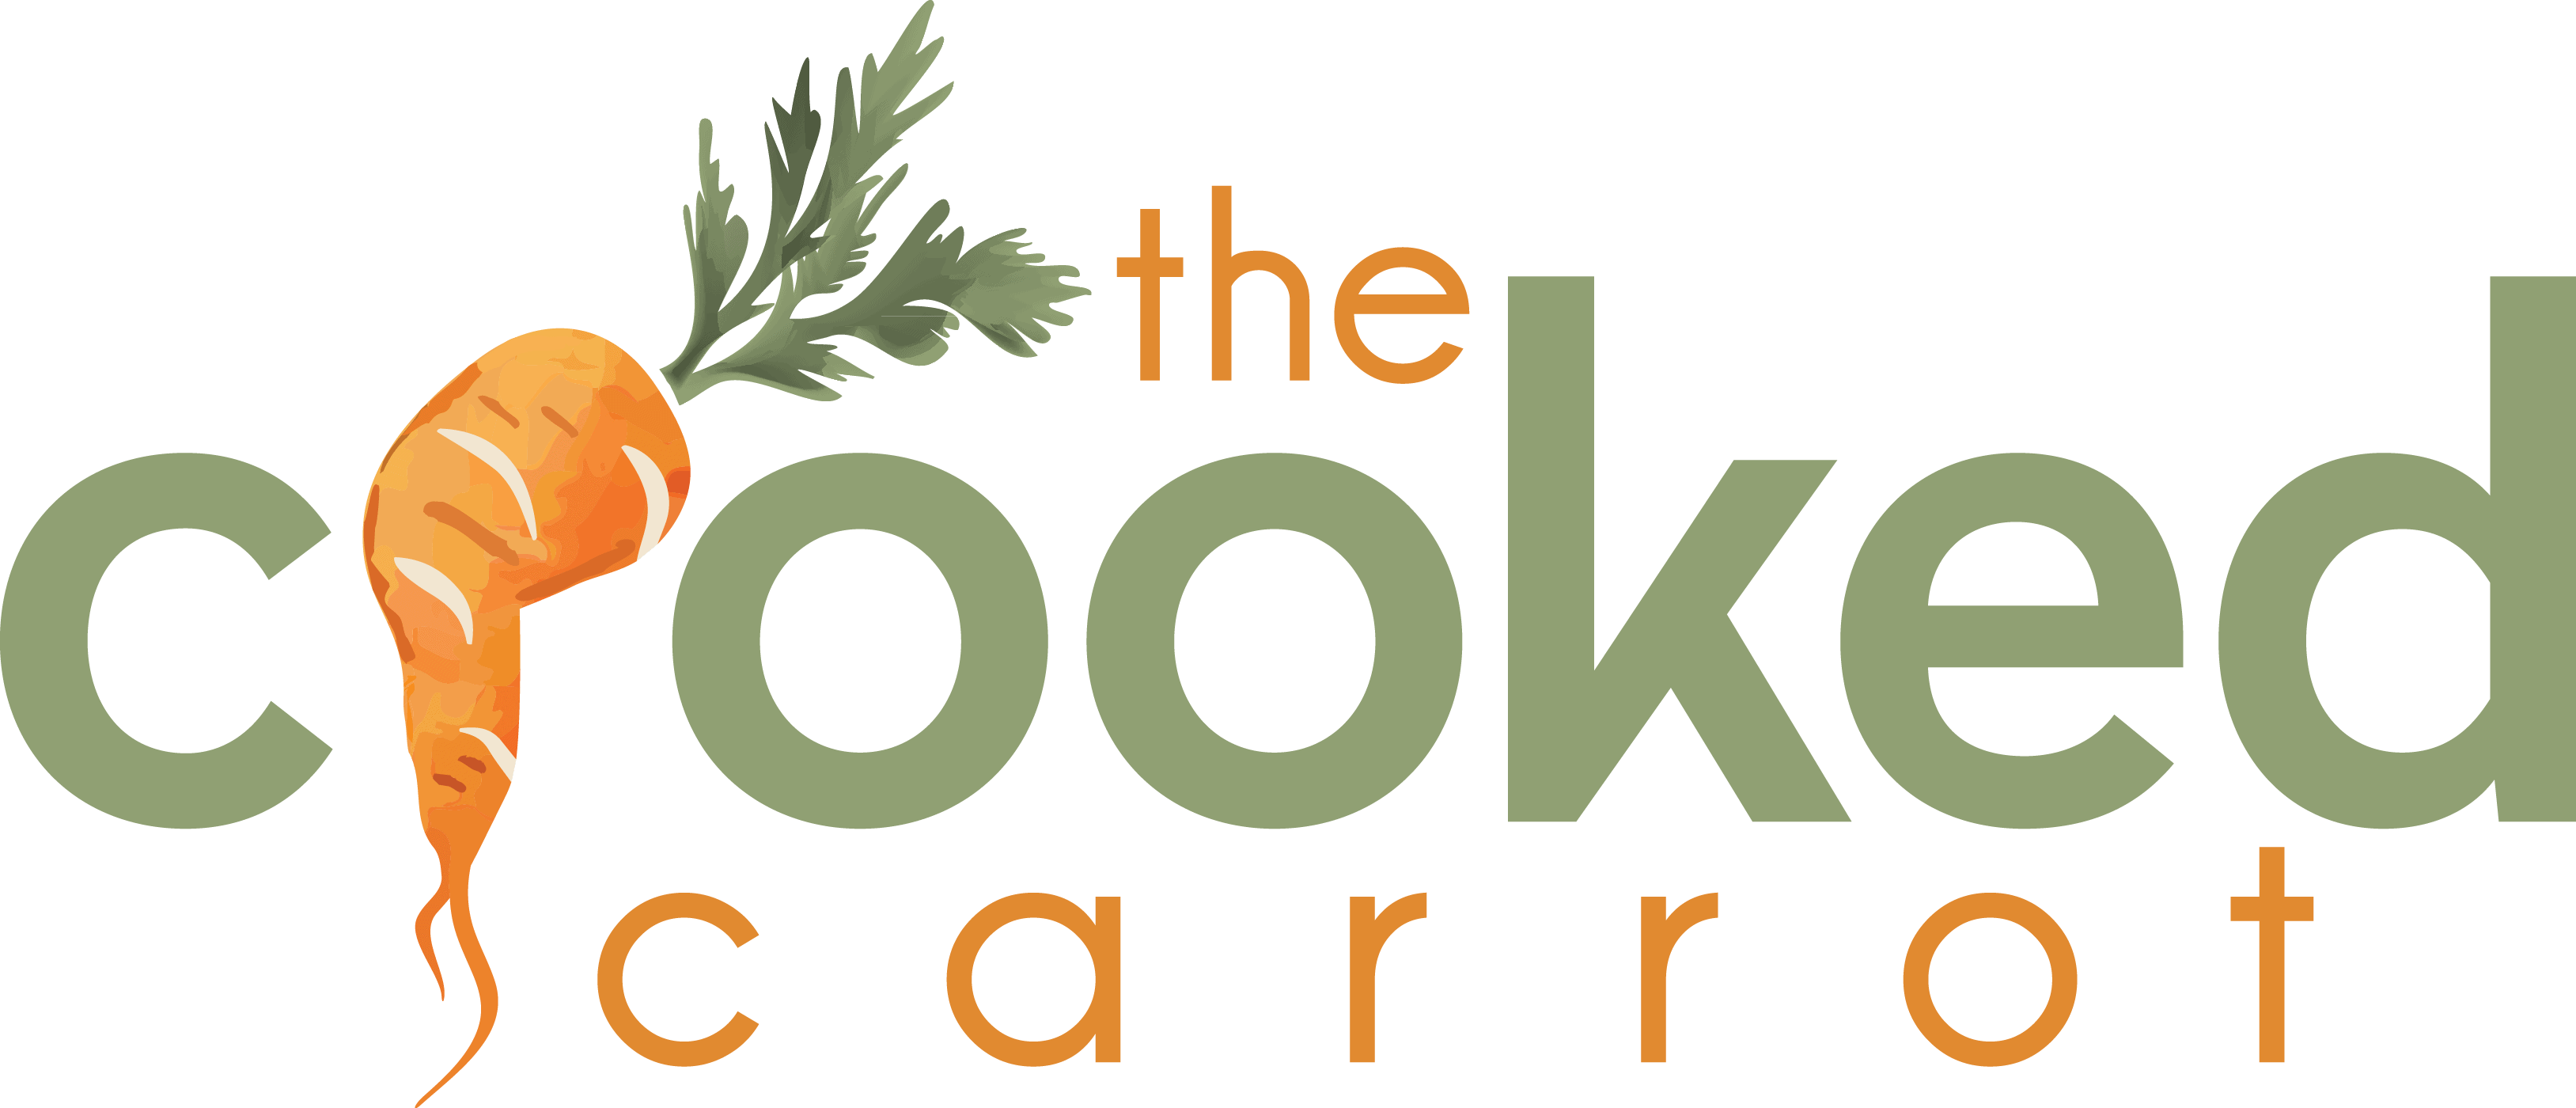 The Crooked Carrot logo